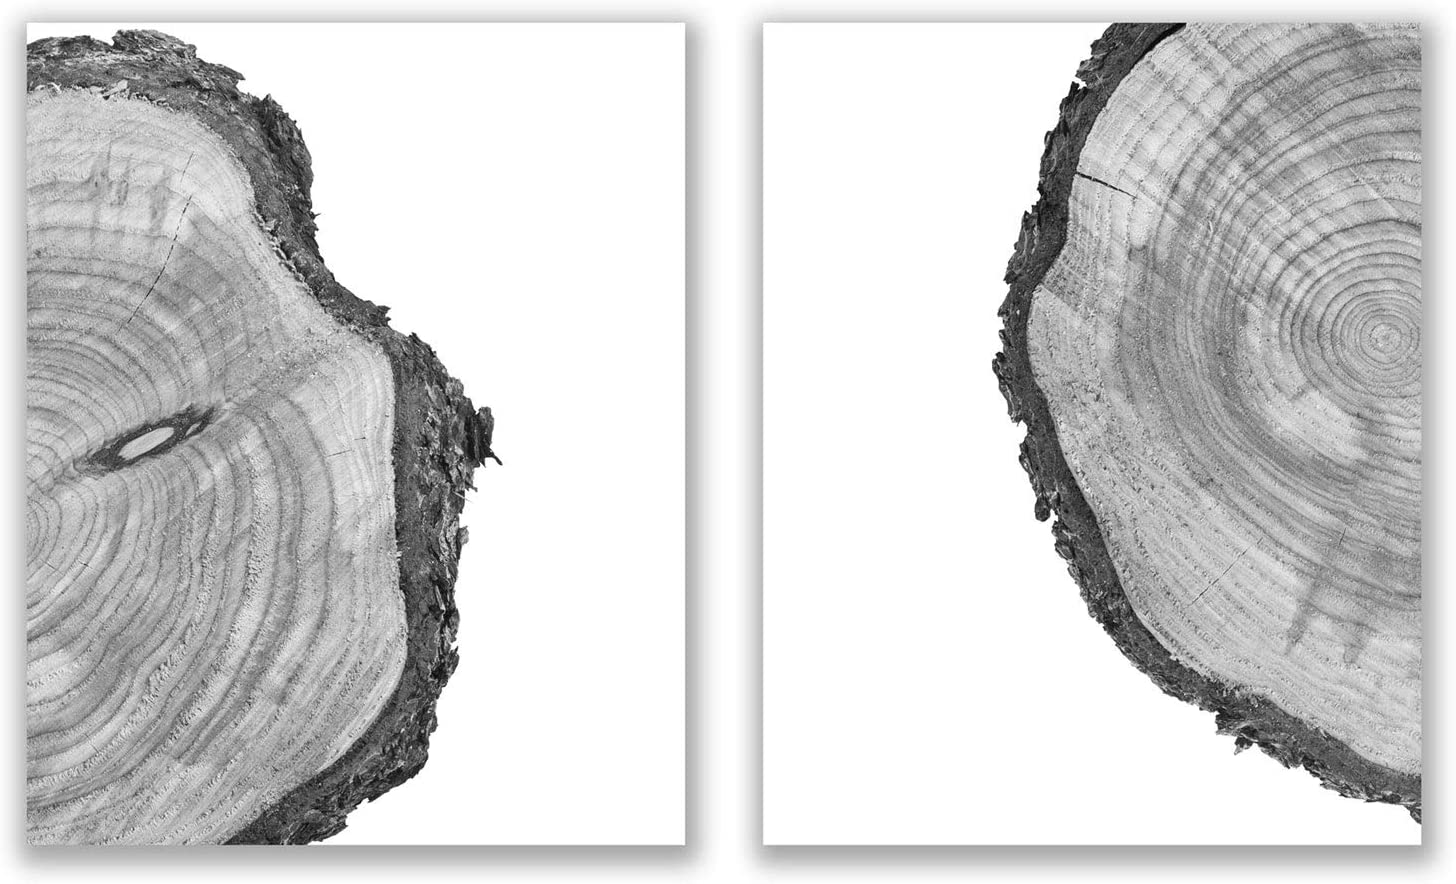 Tree Rings Prints - Set of 2 (8x10) Glossy Black and White Modern Nature Forest Scandinavain Farmhouse Minimalist Wall Art Photography Decor